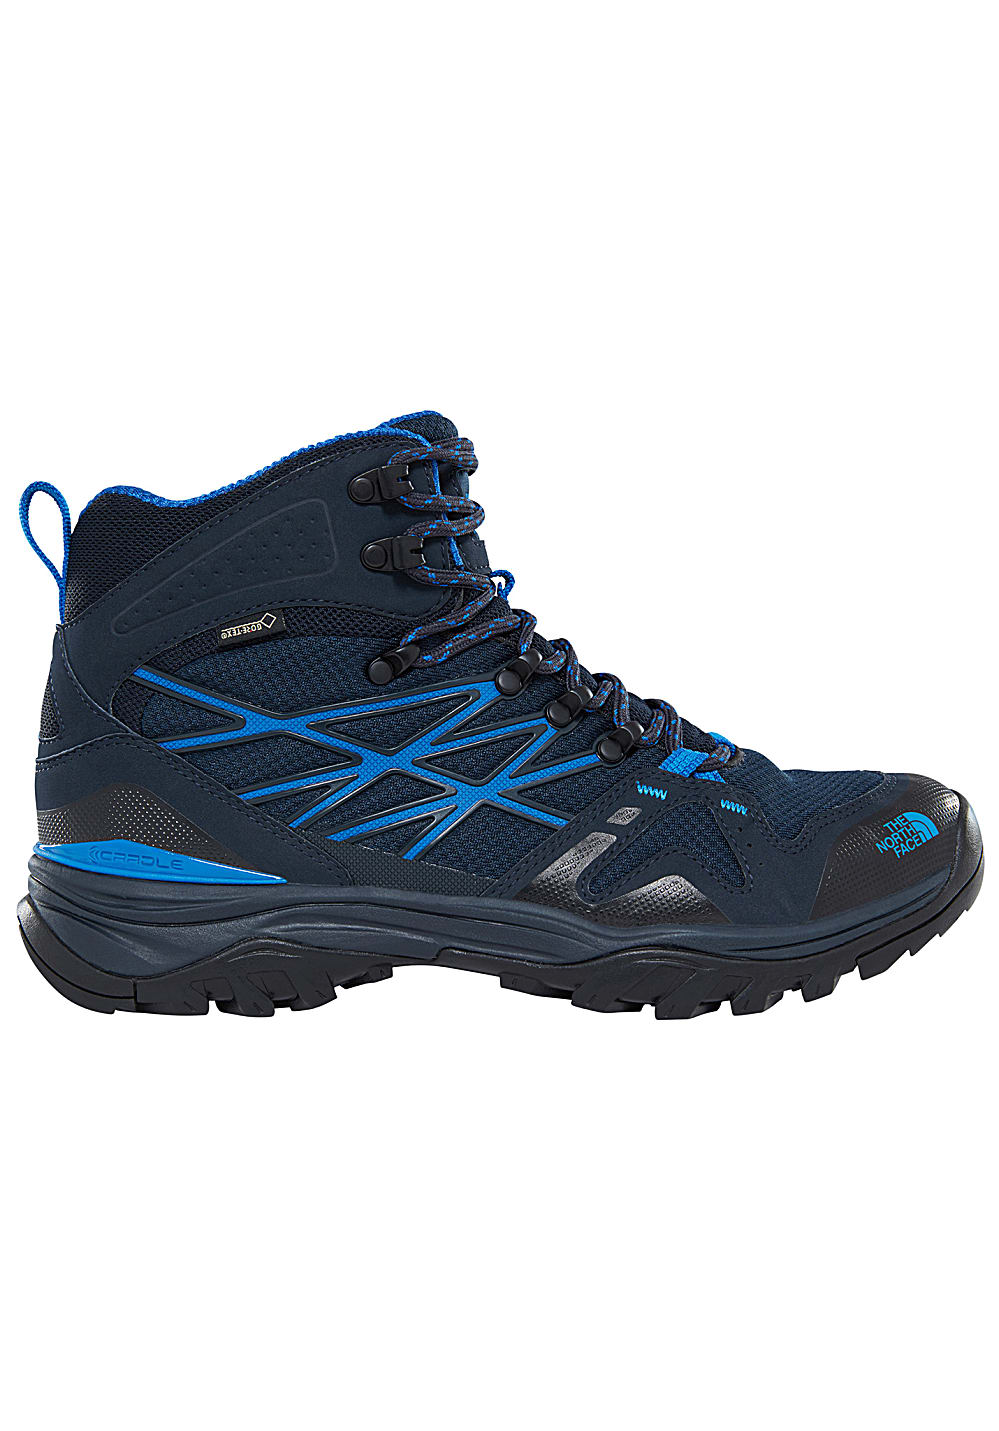 2a4004774a9 THE NORTH FACE Hedgehog Fastpack Mid GTX - Trekking Shoes for Men - Blue